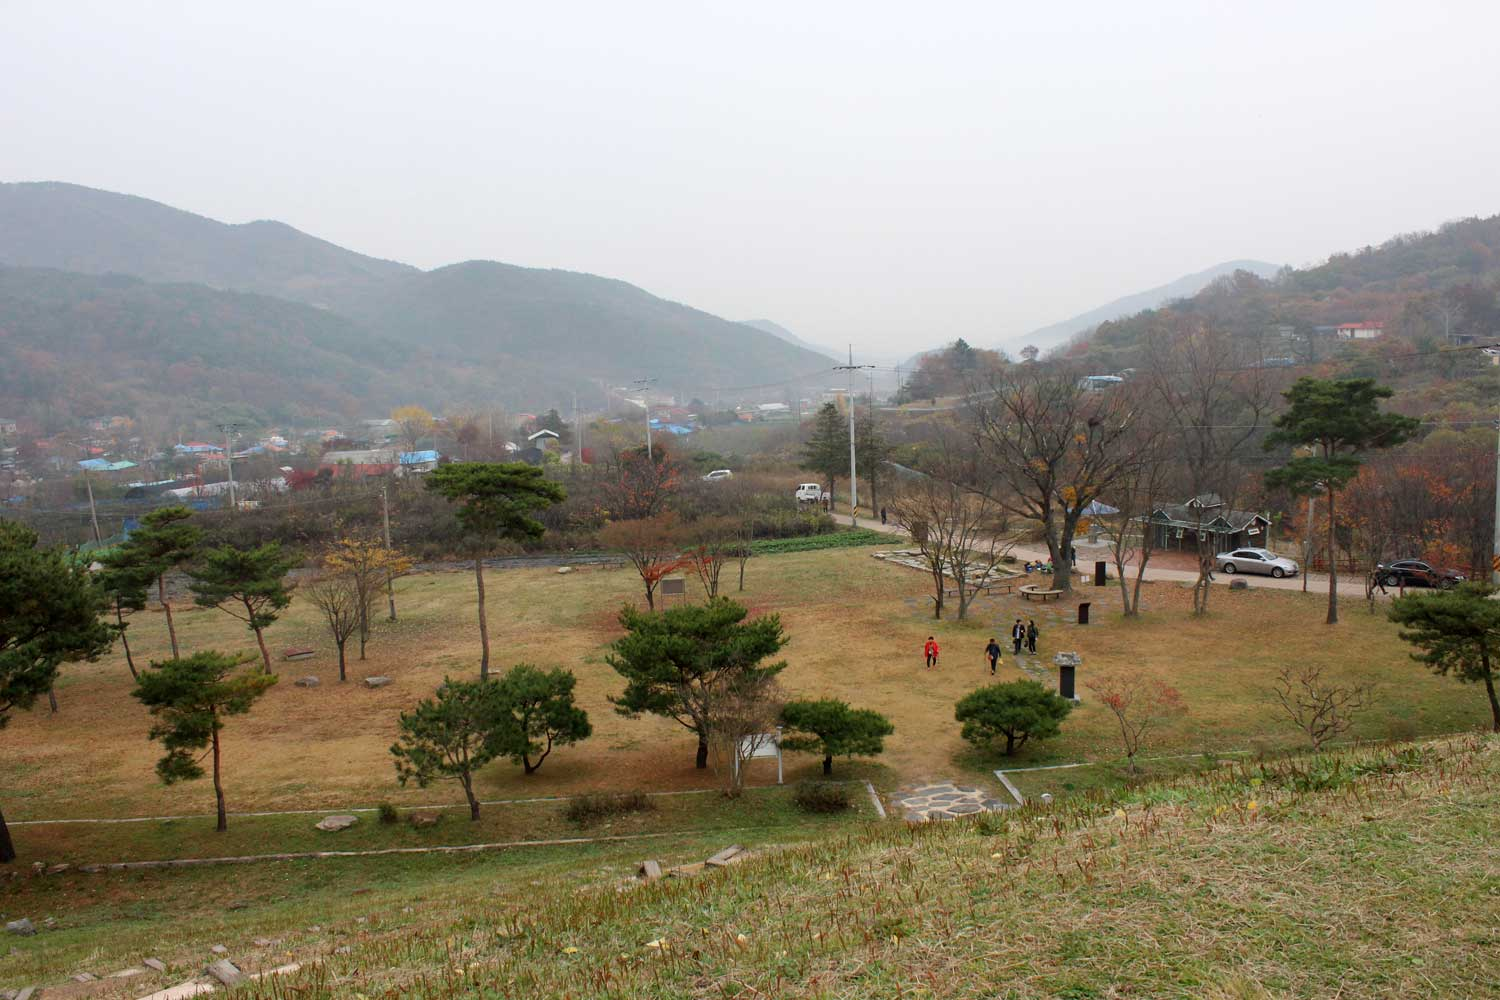 2018 travel diary 4 – Gayasa and the tomb of Namyeon-gun